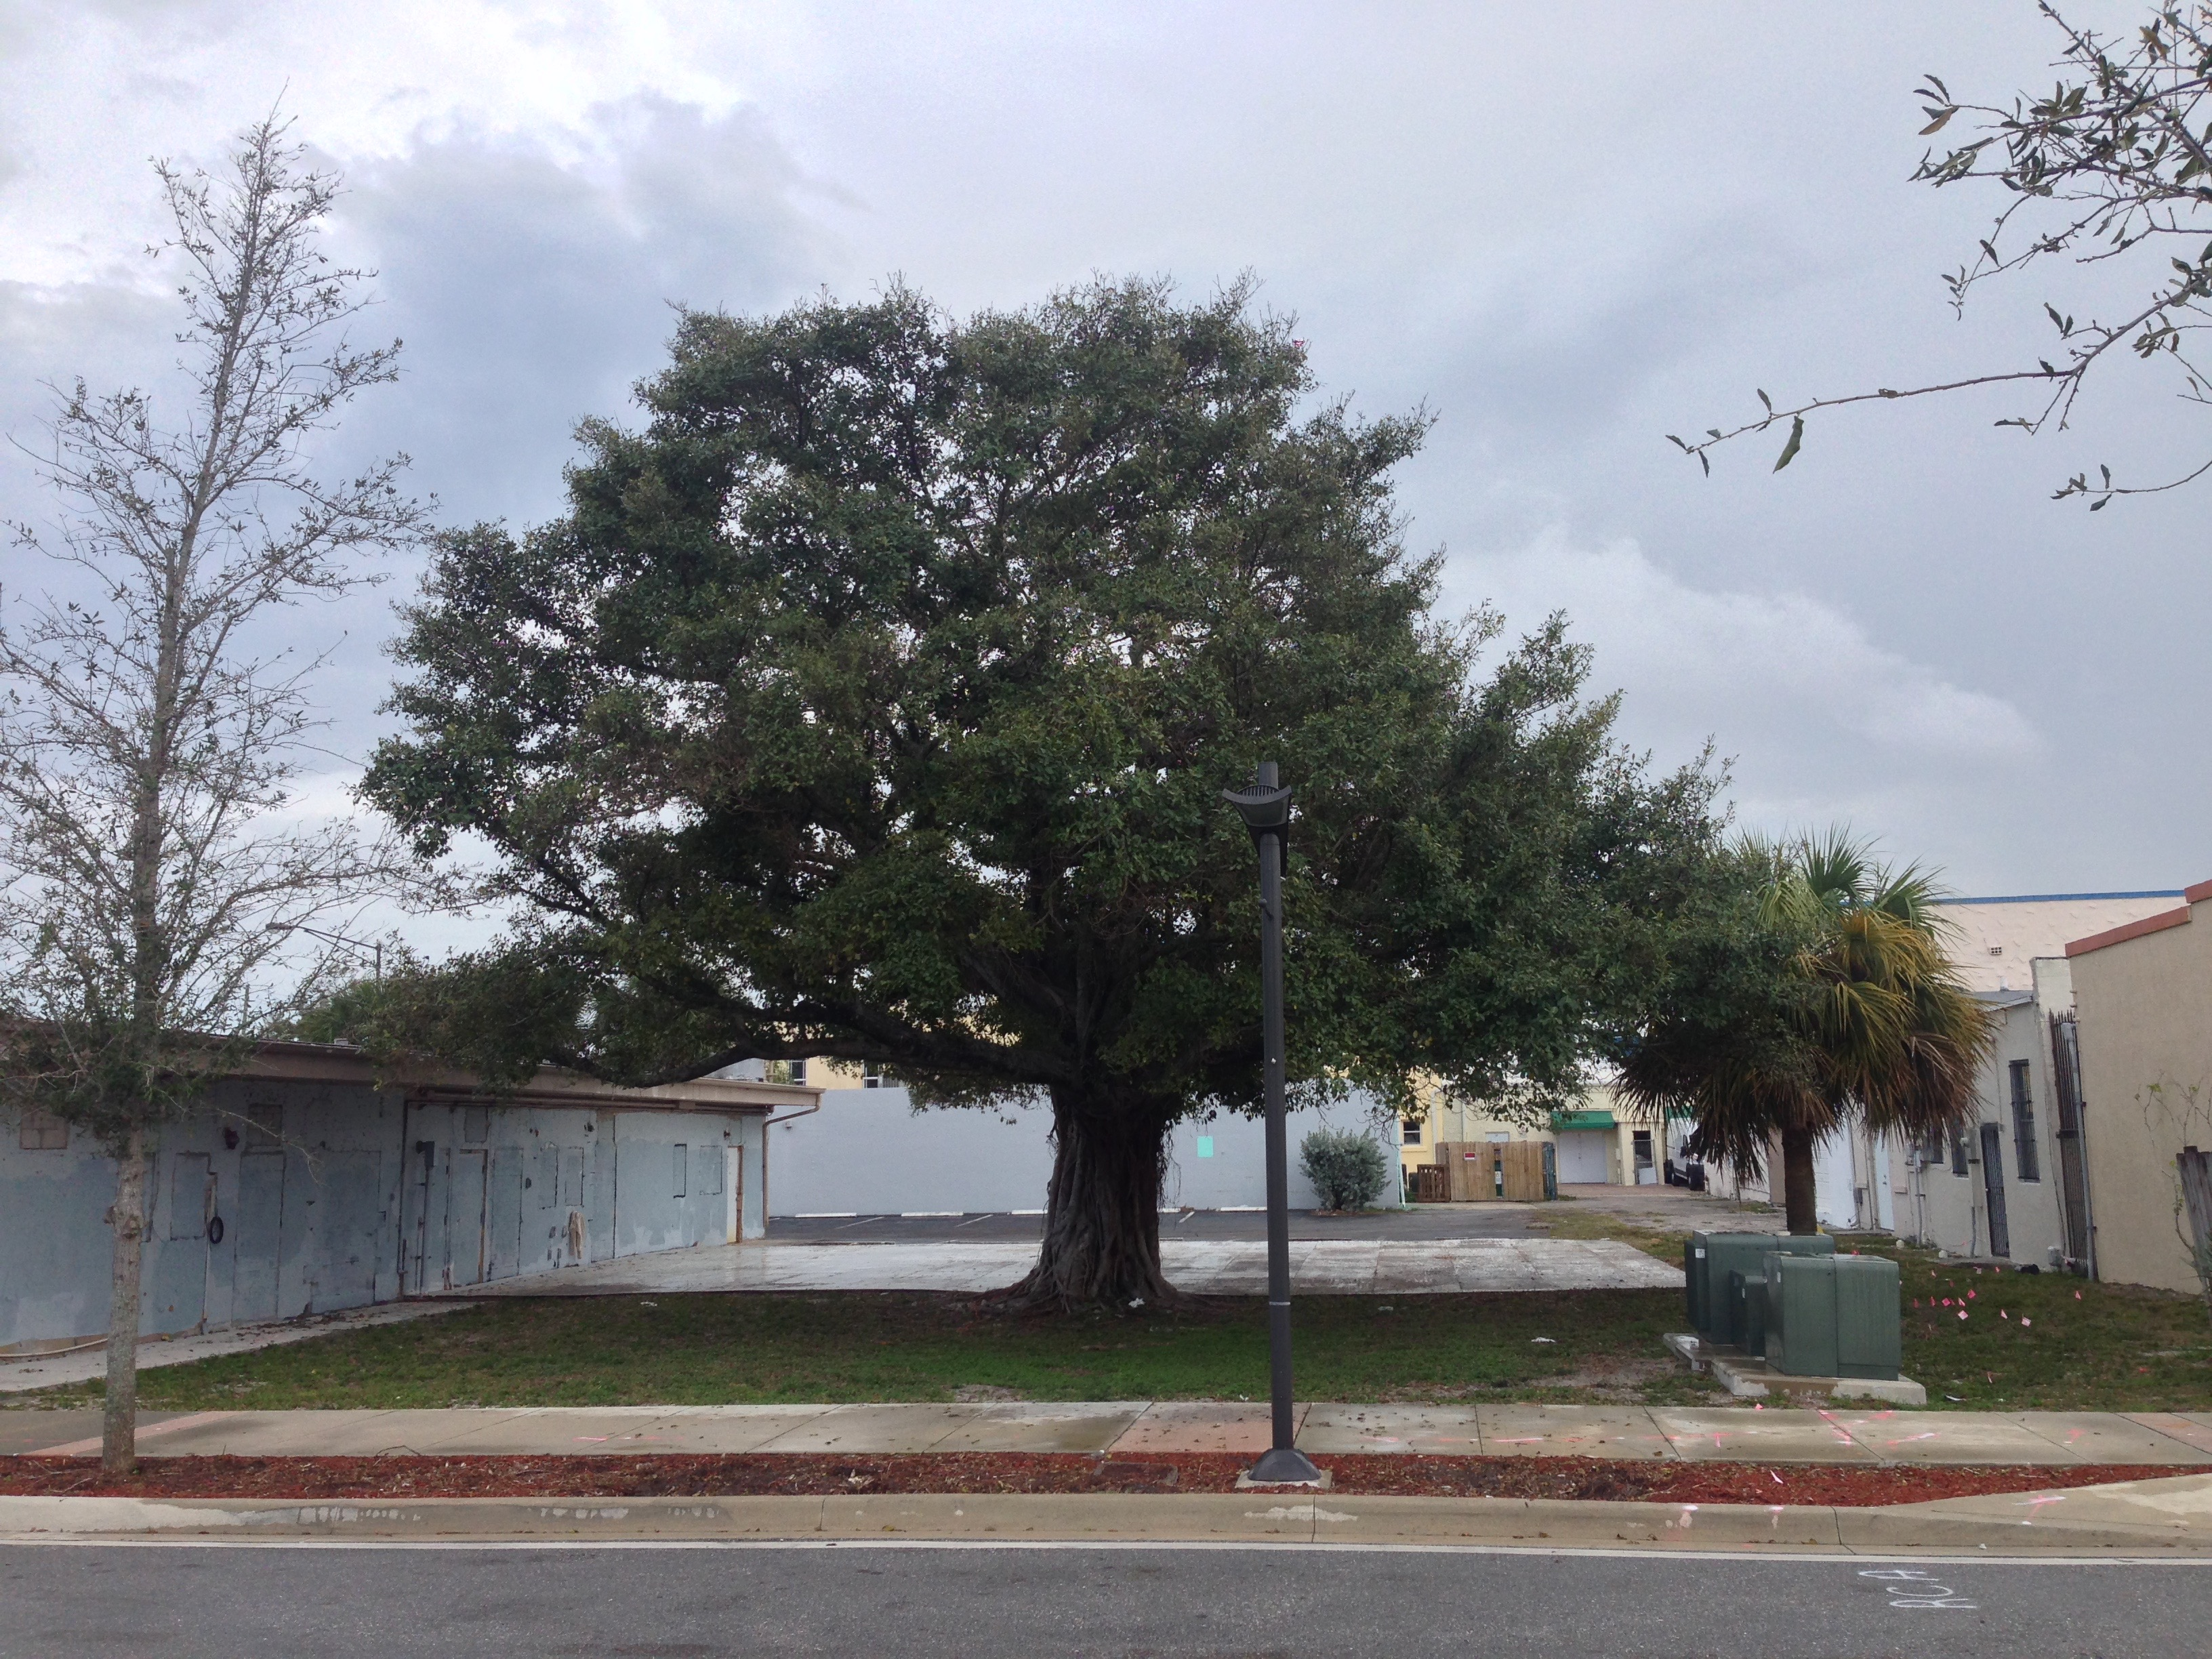 Site of The Backyard public plaza as it exists today.